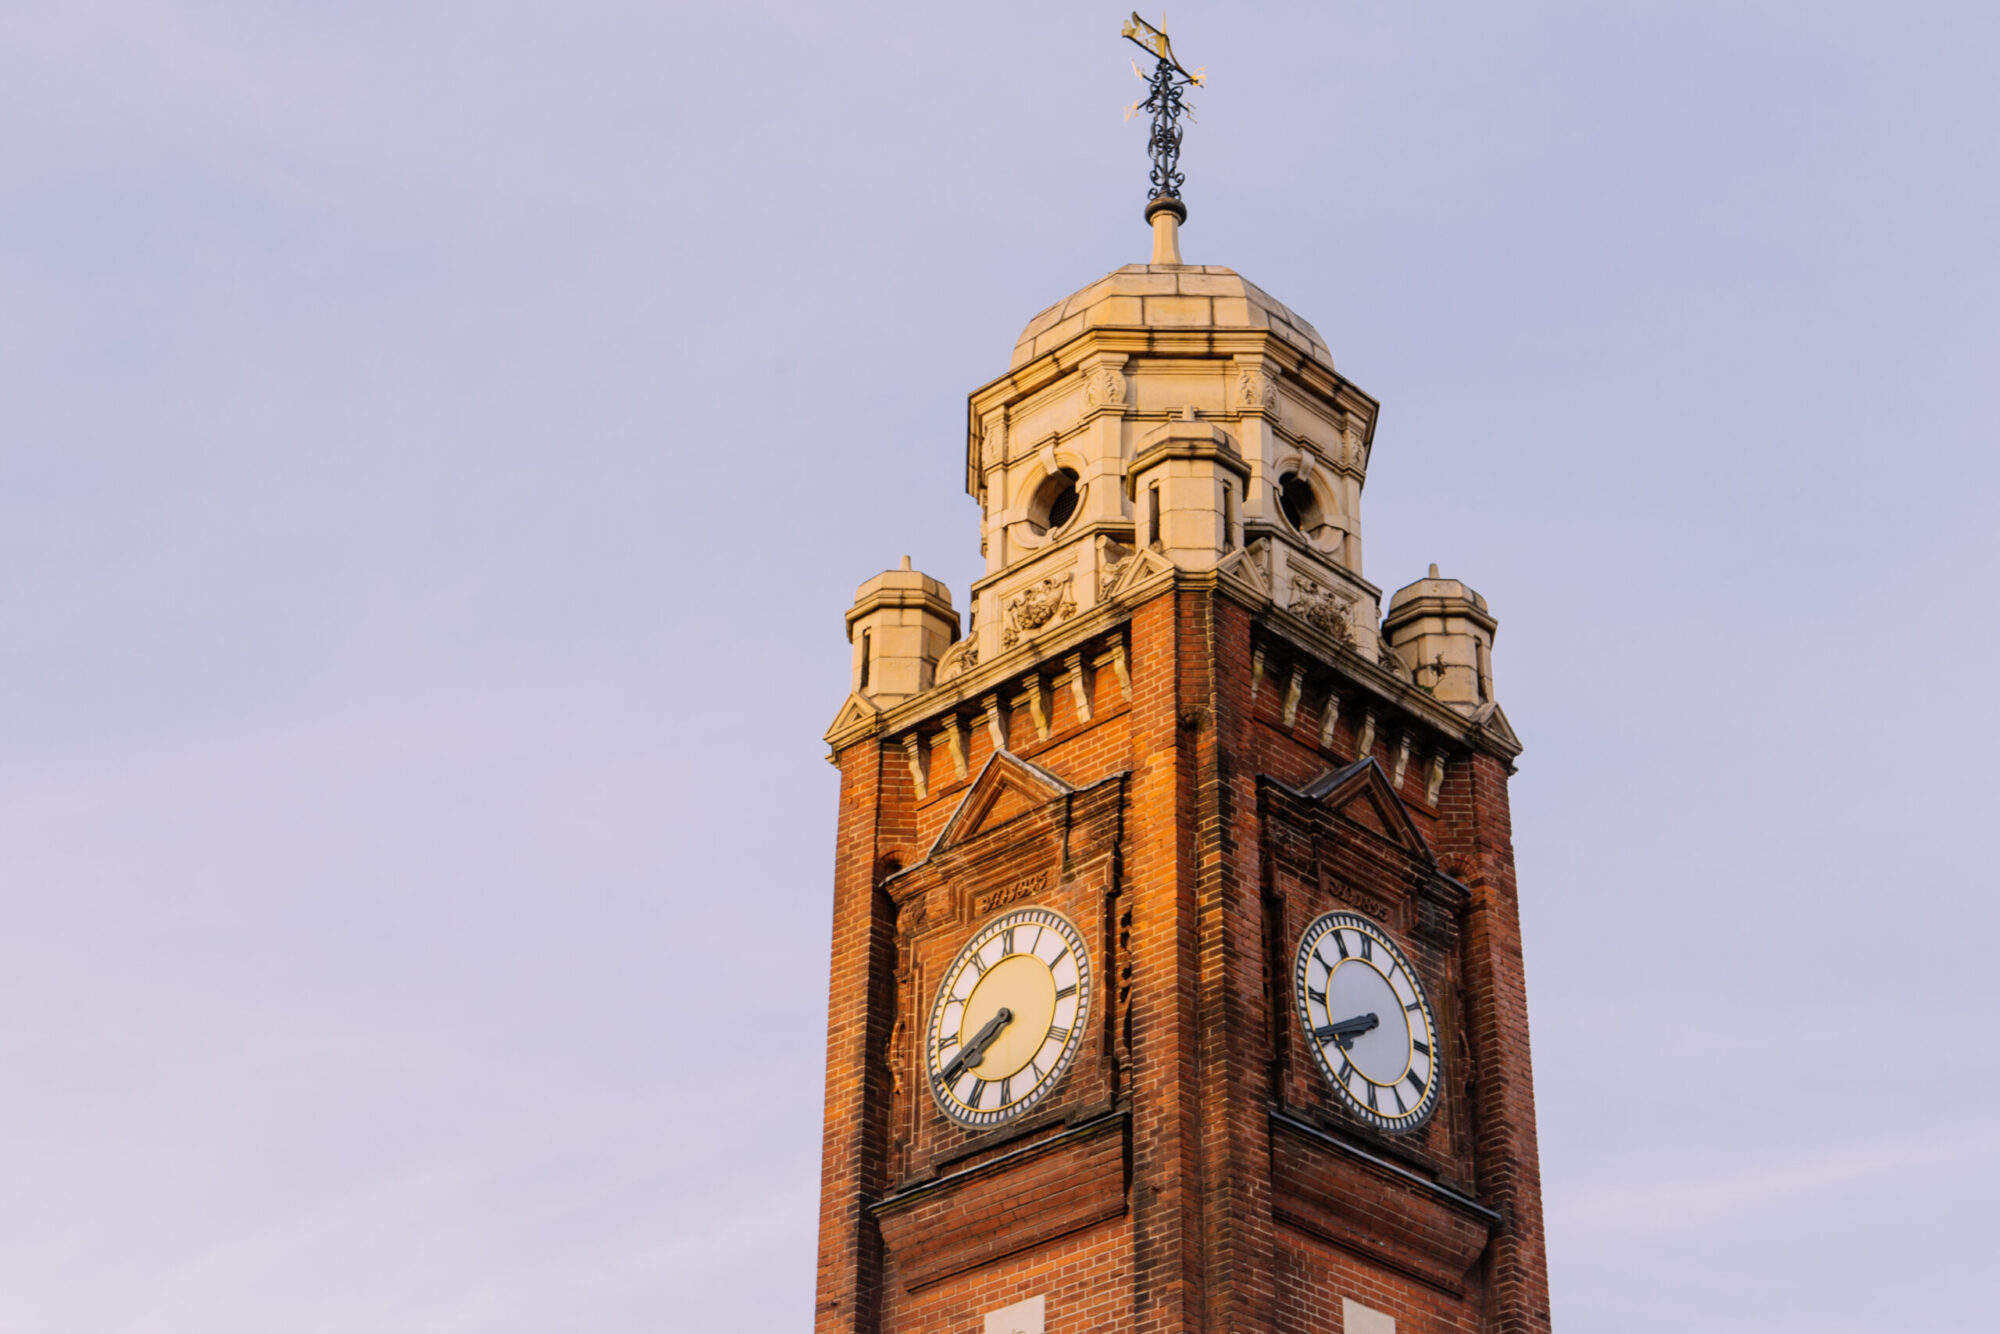 The Clock Tower in Crouch End, Haringey.